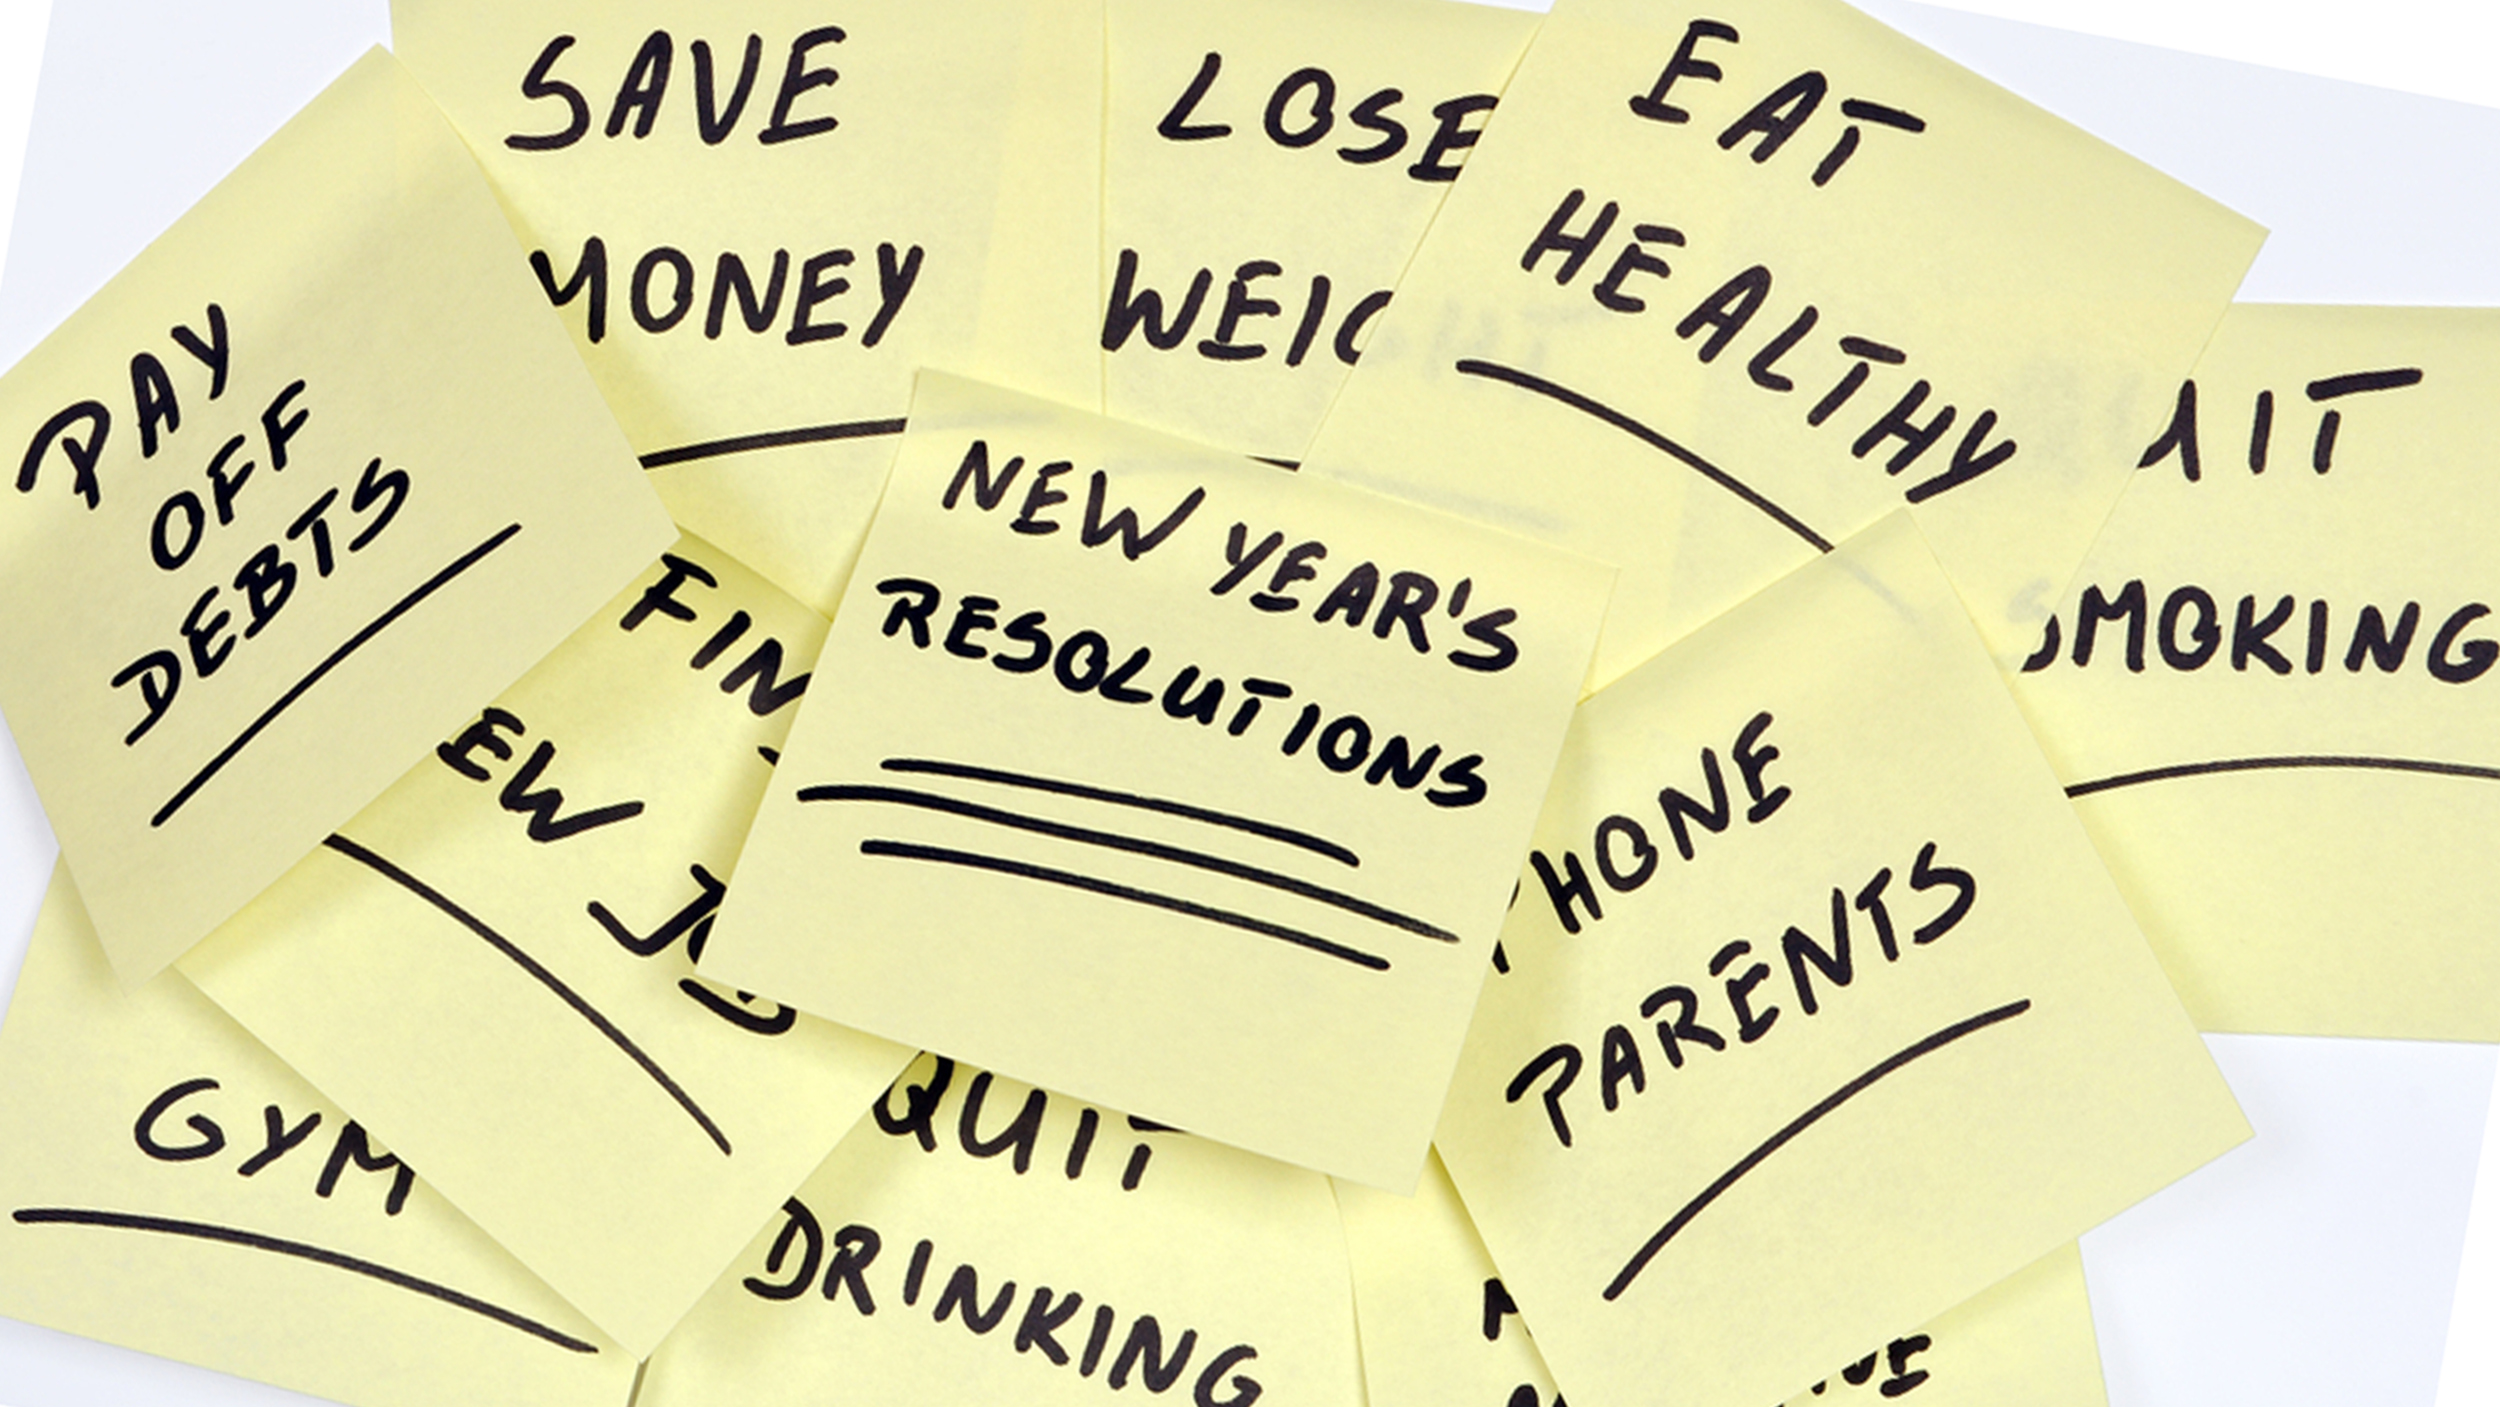 New Year - New Vision: Why to give up on goals.